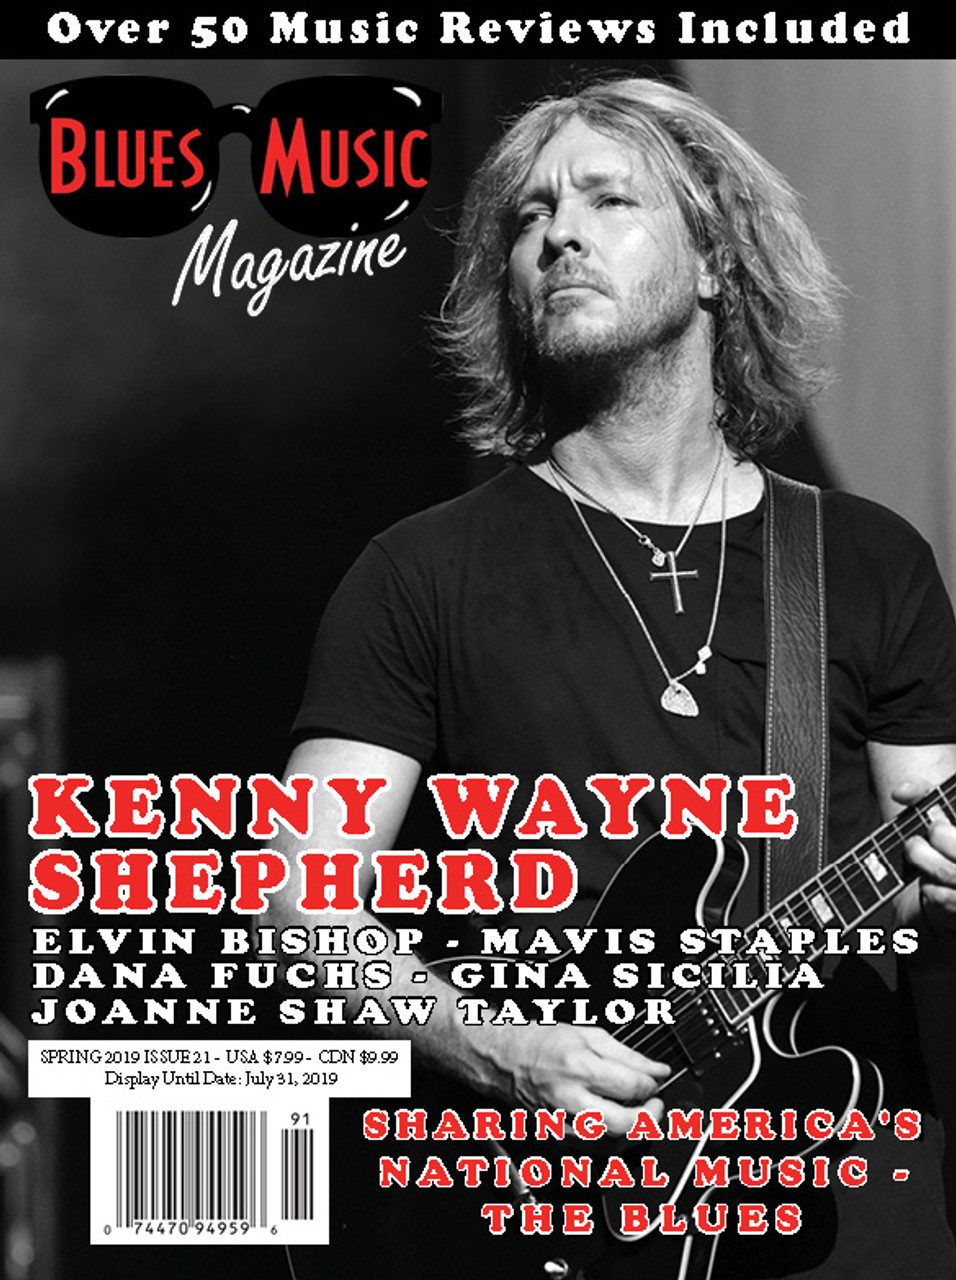 USA ONLY - THE SPRING ISSUE - APRIL 2019 - SINGLE COPY & FREE SHIPPING